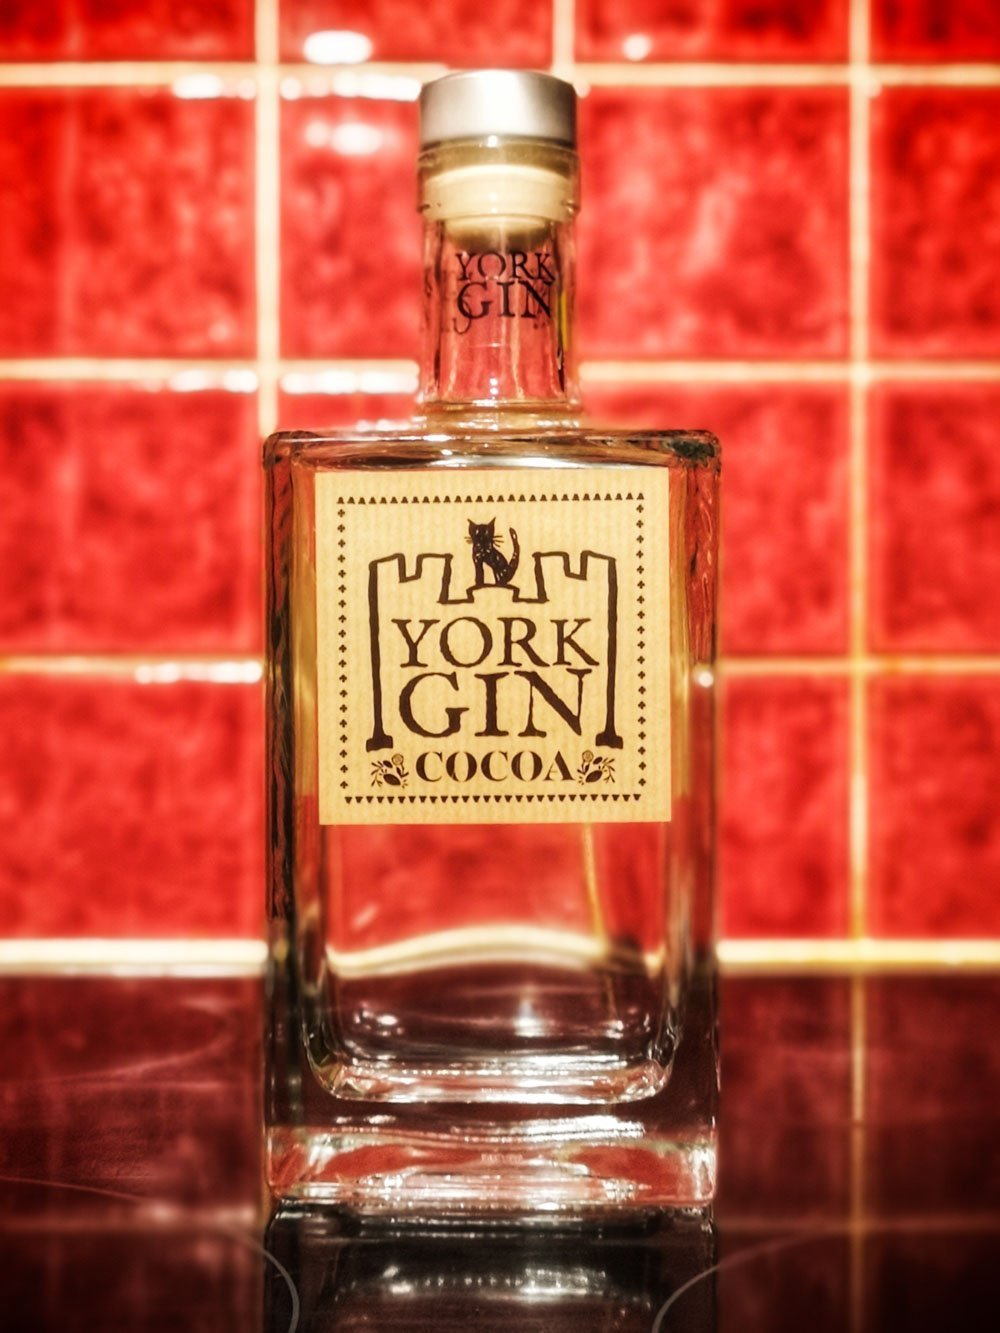 IMG_20181201_192429-01 Discovering York Gin